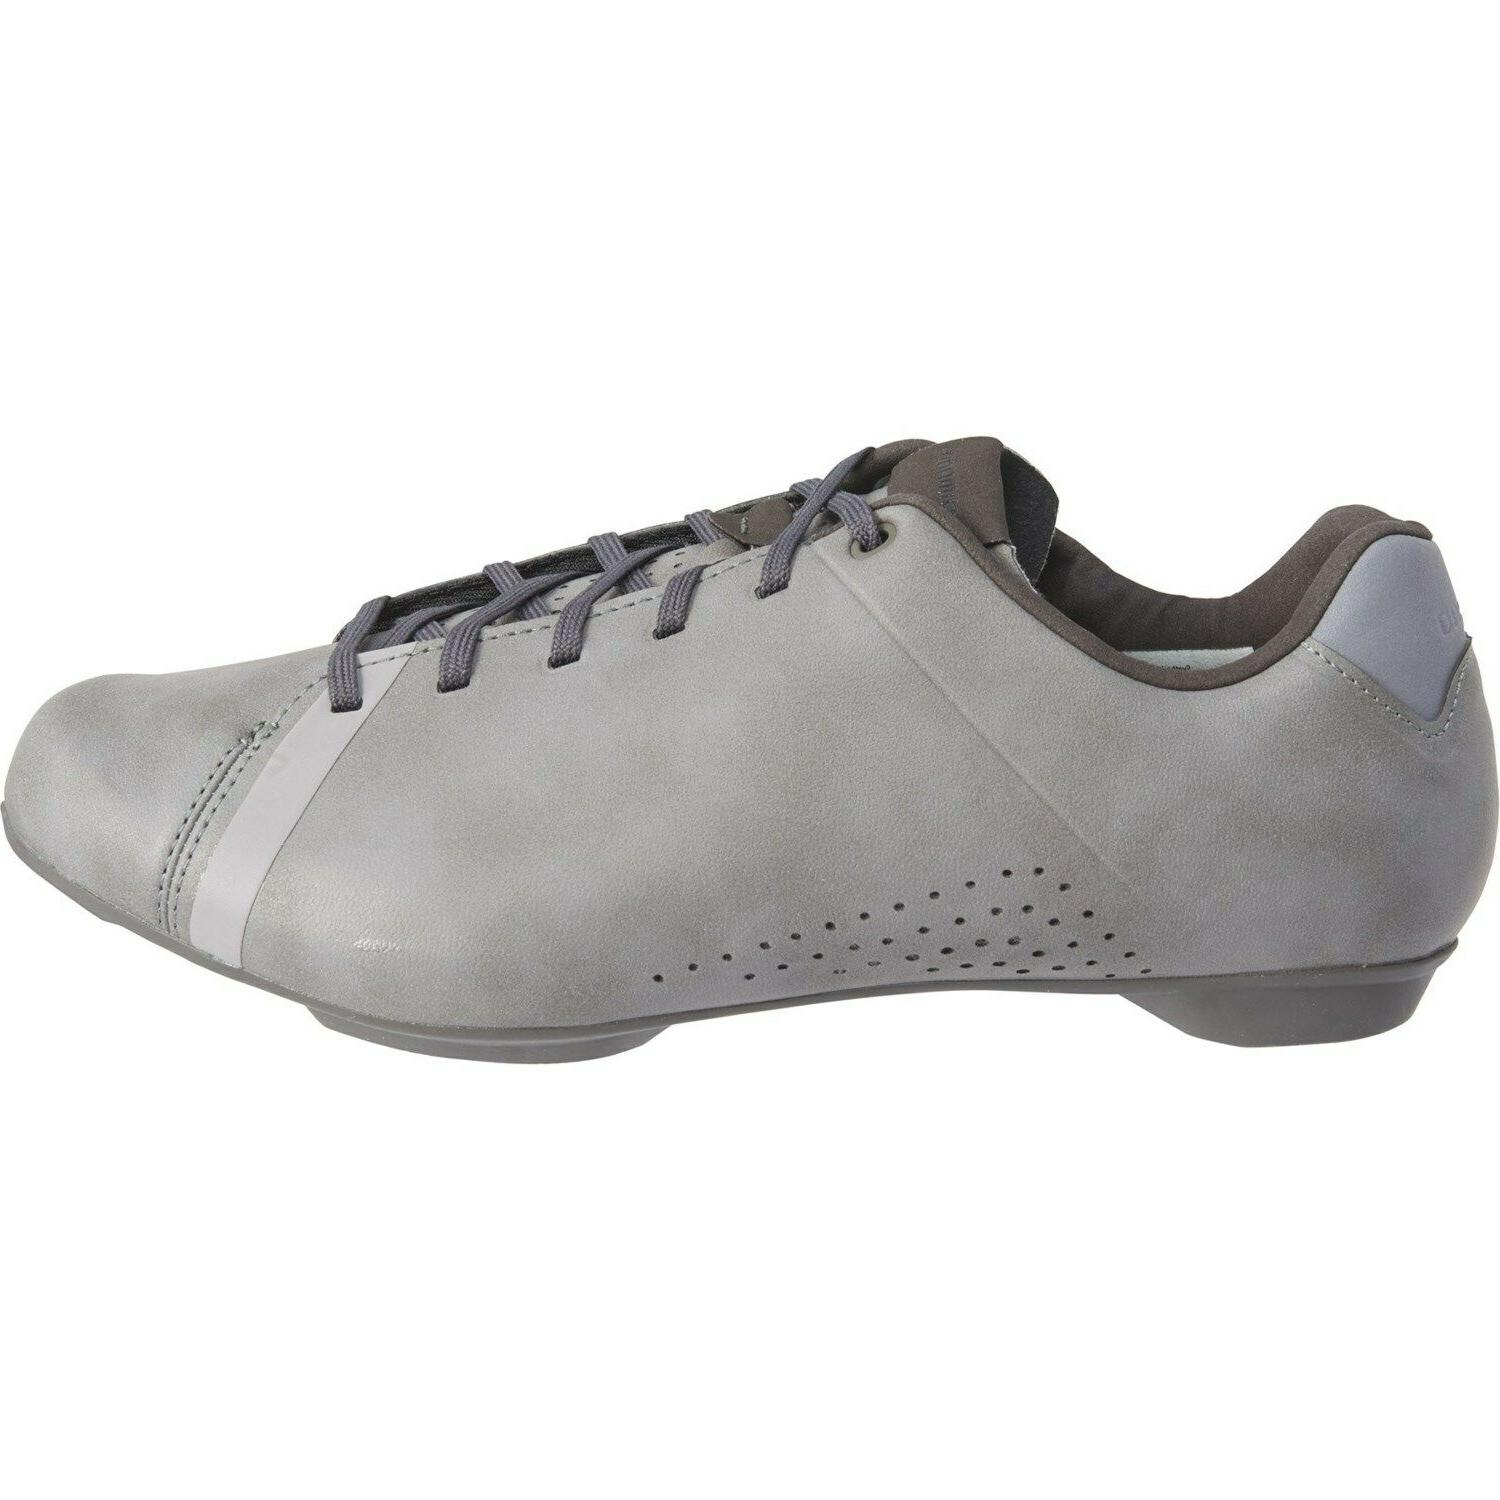 NEW Shimano Bicycle Shoes SPD Grey : EUR US